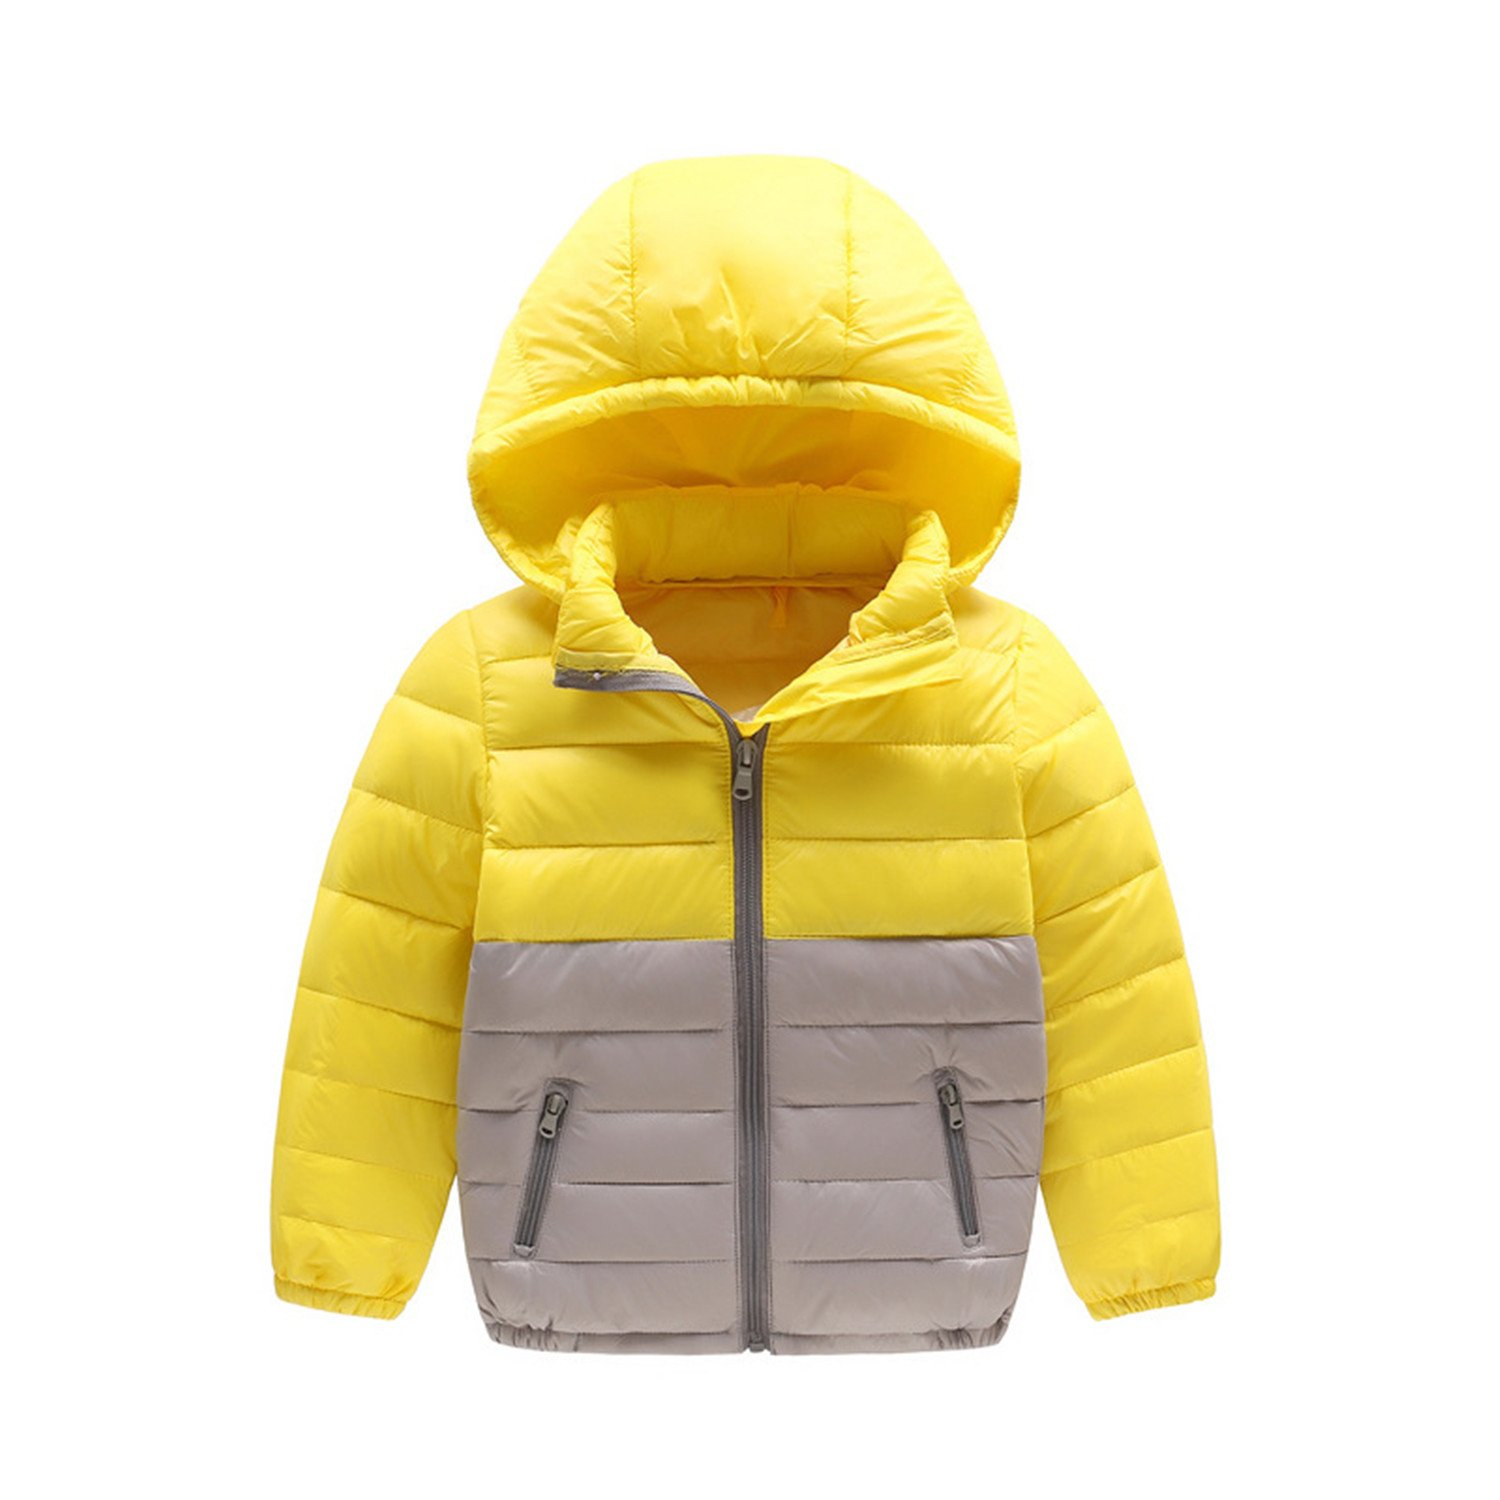 Baqijian Girls Parka Winter Coat Fur Children Down Jacket Lightweight Boy Girl Cap Splicing Colcoat